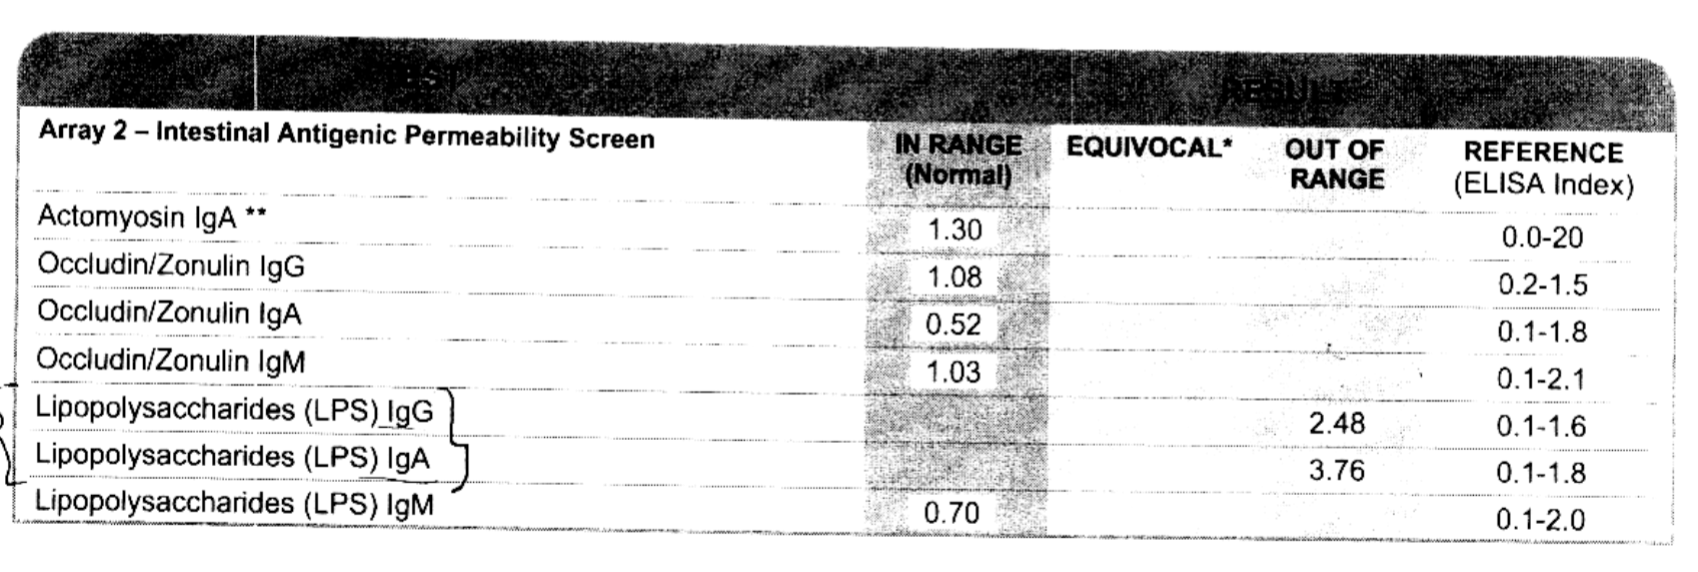 My results from the Cyrex Labs Array 2 blood test (called the Intestinal Antigenic Permeability Screen),  which show I have gut dysbiosis, but no leaky gut that requires healing